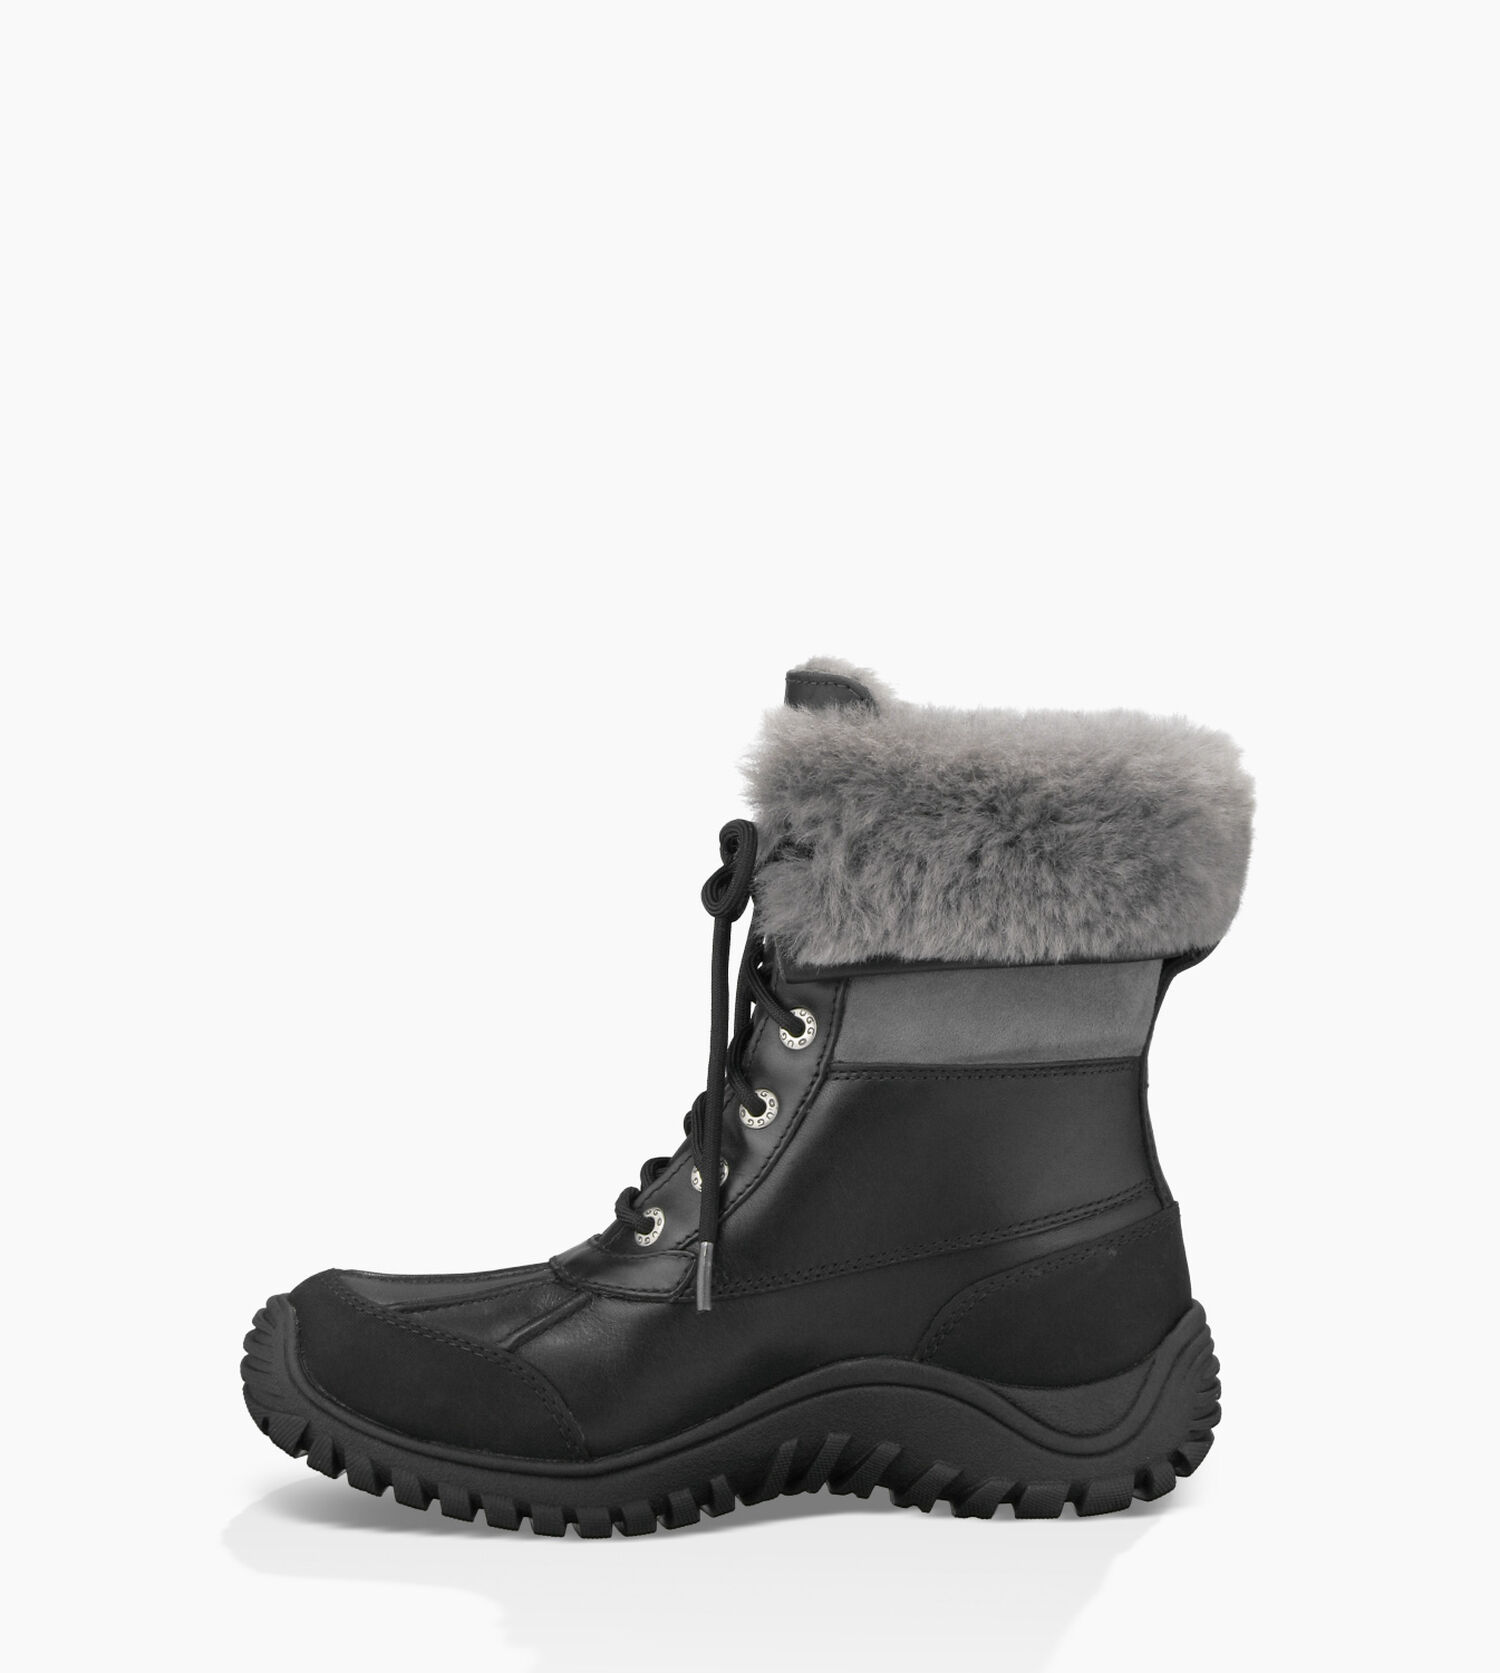 c799235a3b9 Women's Share this product Adirondack Boot II - Leather